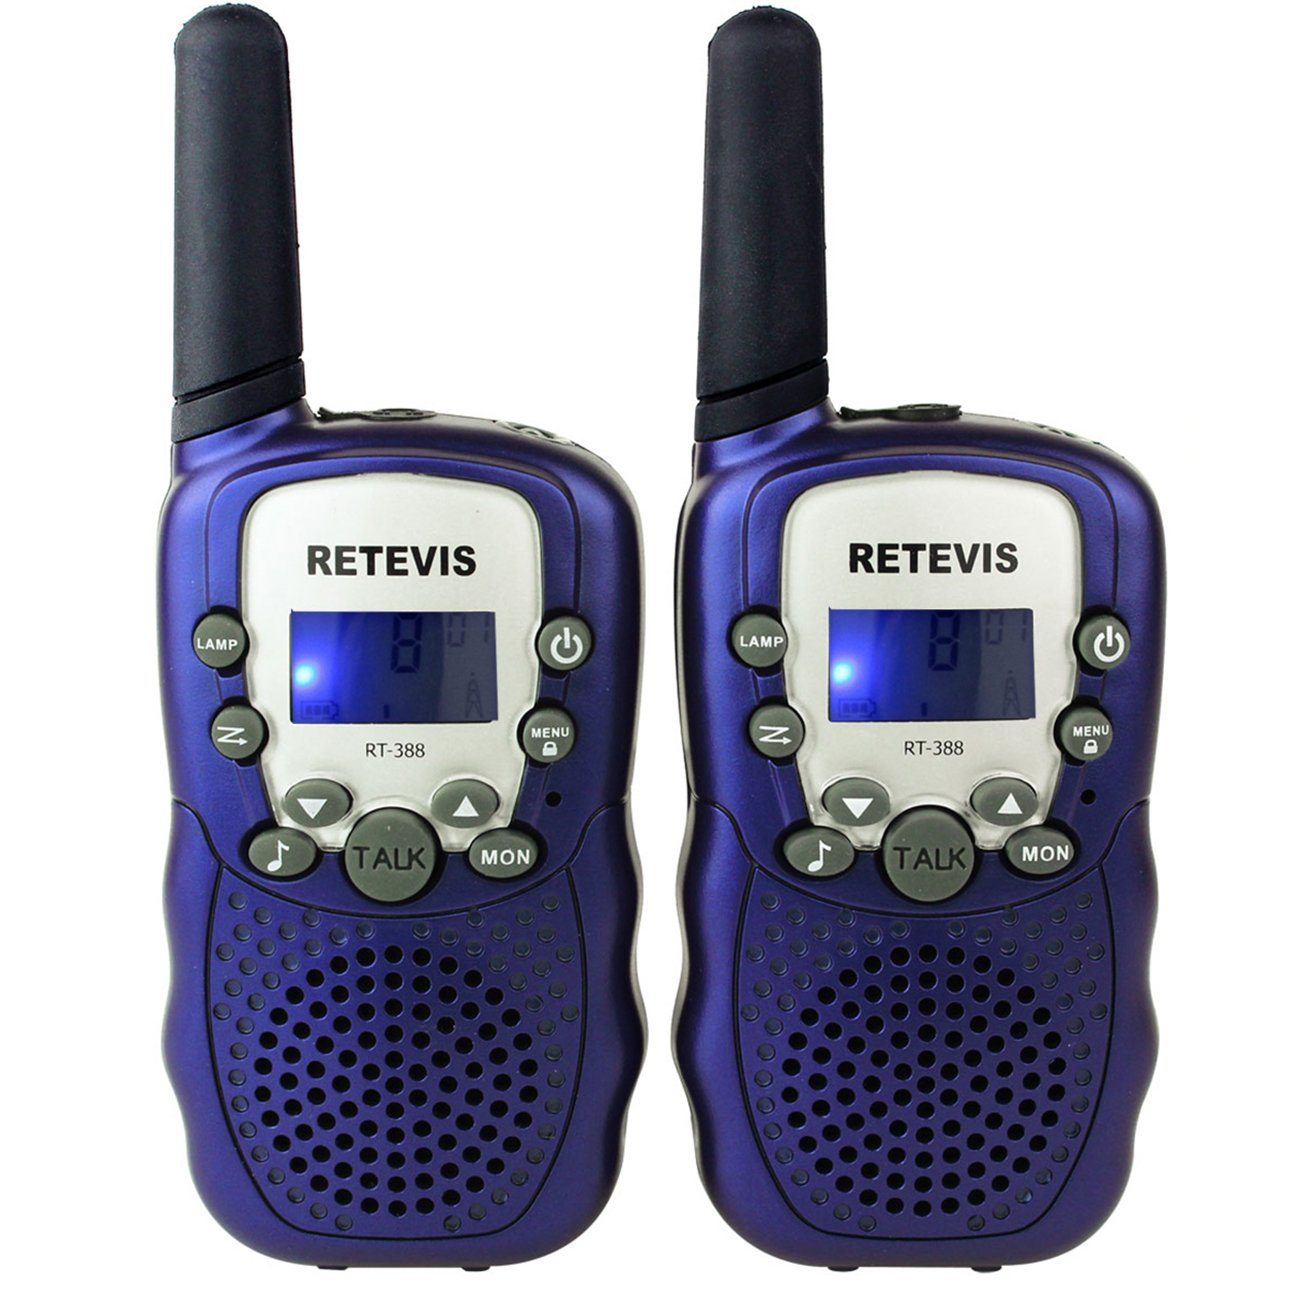 Retevis RT-388 Kids Walkie Talkies Boys 0.5W License Free 22CH FRS Toy Walkie Talkies(Blue, 2 Pack)